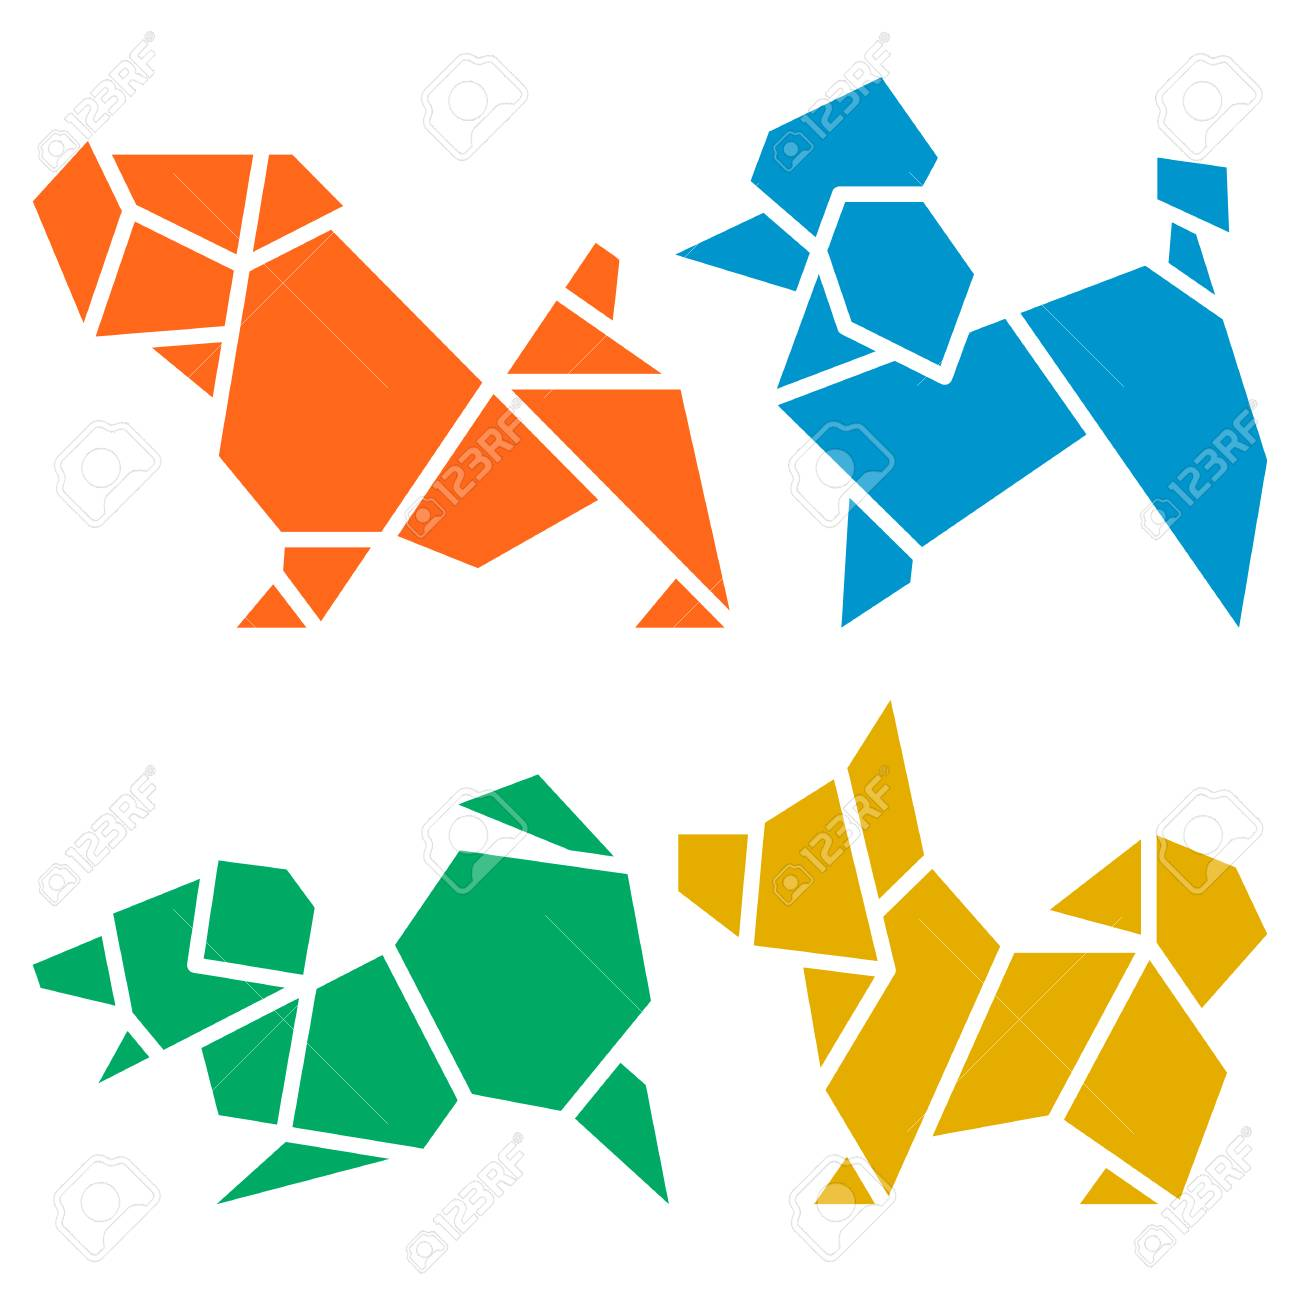 Vector origami dogs icon set abstract low poly pet dog breed sign vector origami dogs icon set abstract low poly pet dog breed sign silhouette isolated on jeuxipadfo Gallery